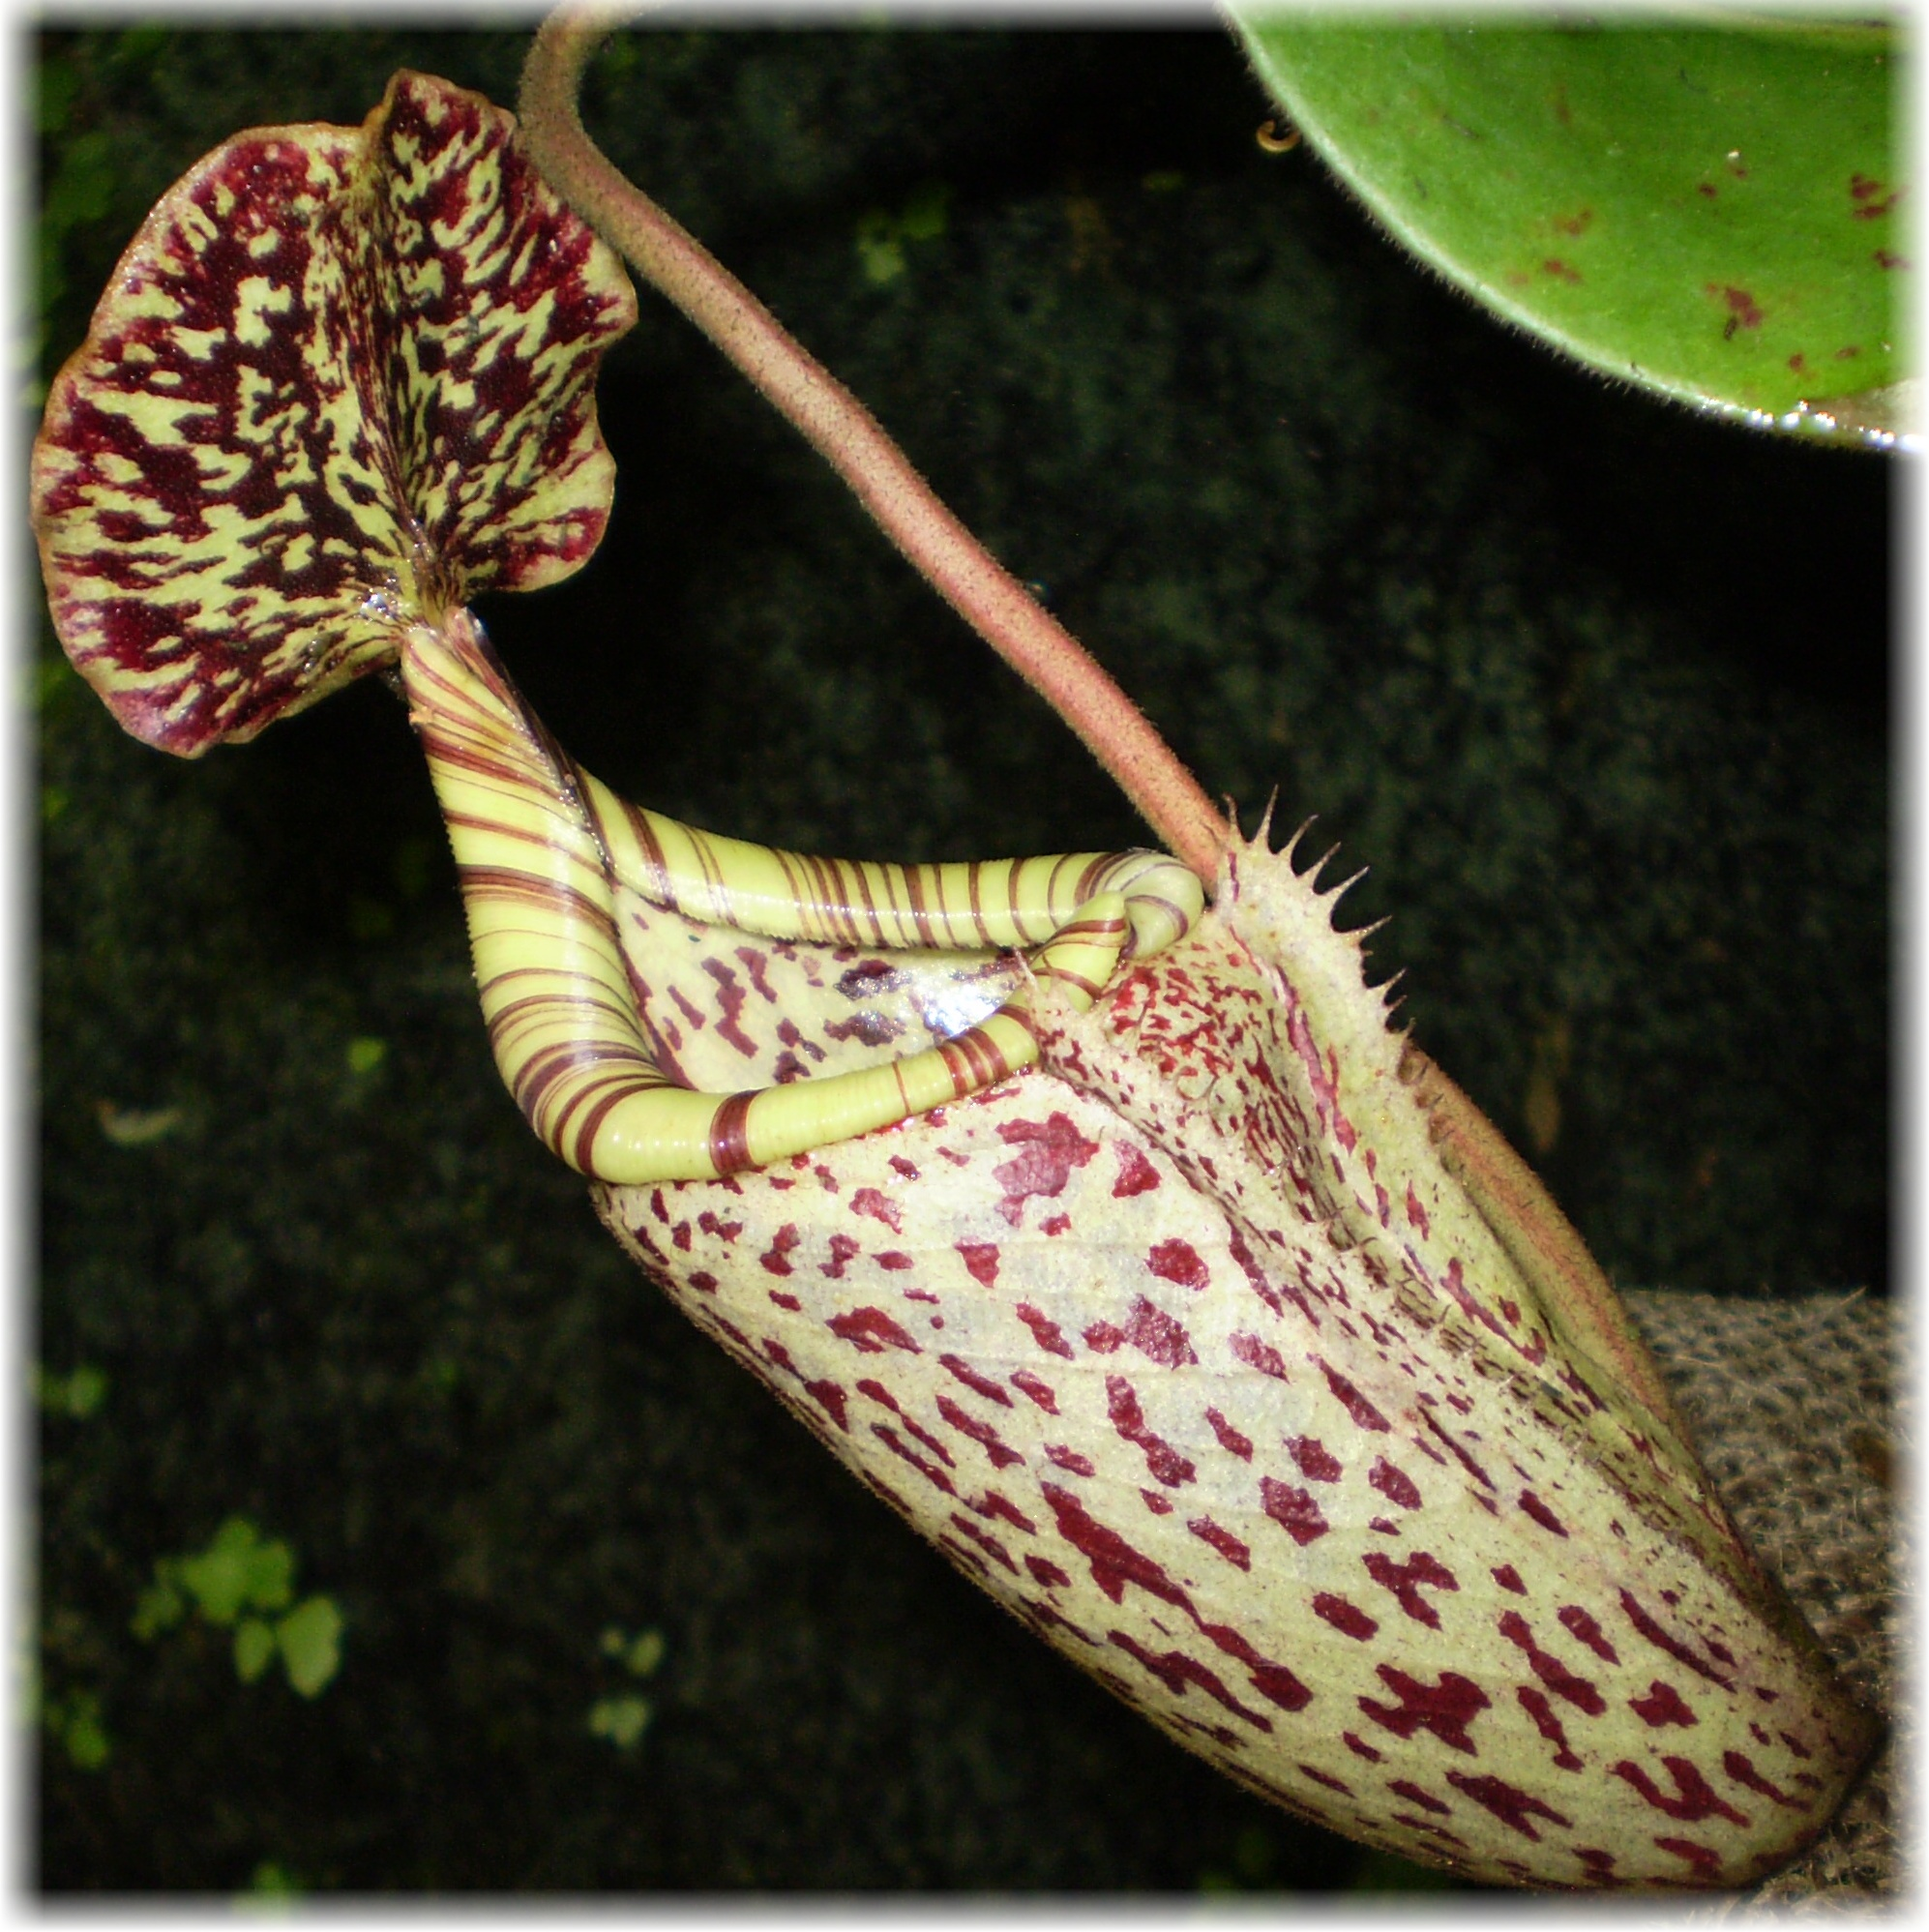 /src/!Fotogalerie/!Nepenthes/!burbidgeae/burbidgeae.jpg